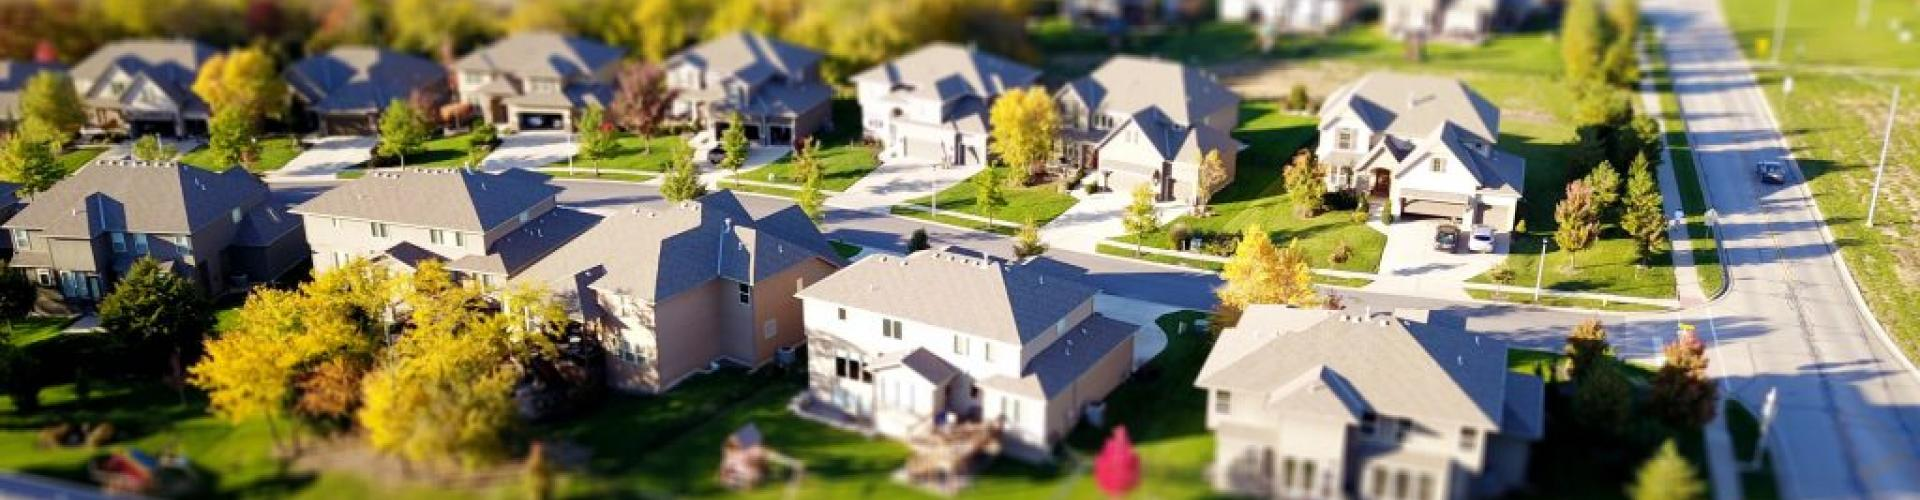 4 Things You Should Know Before Investing in Real Estate